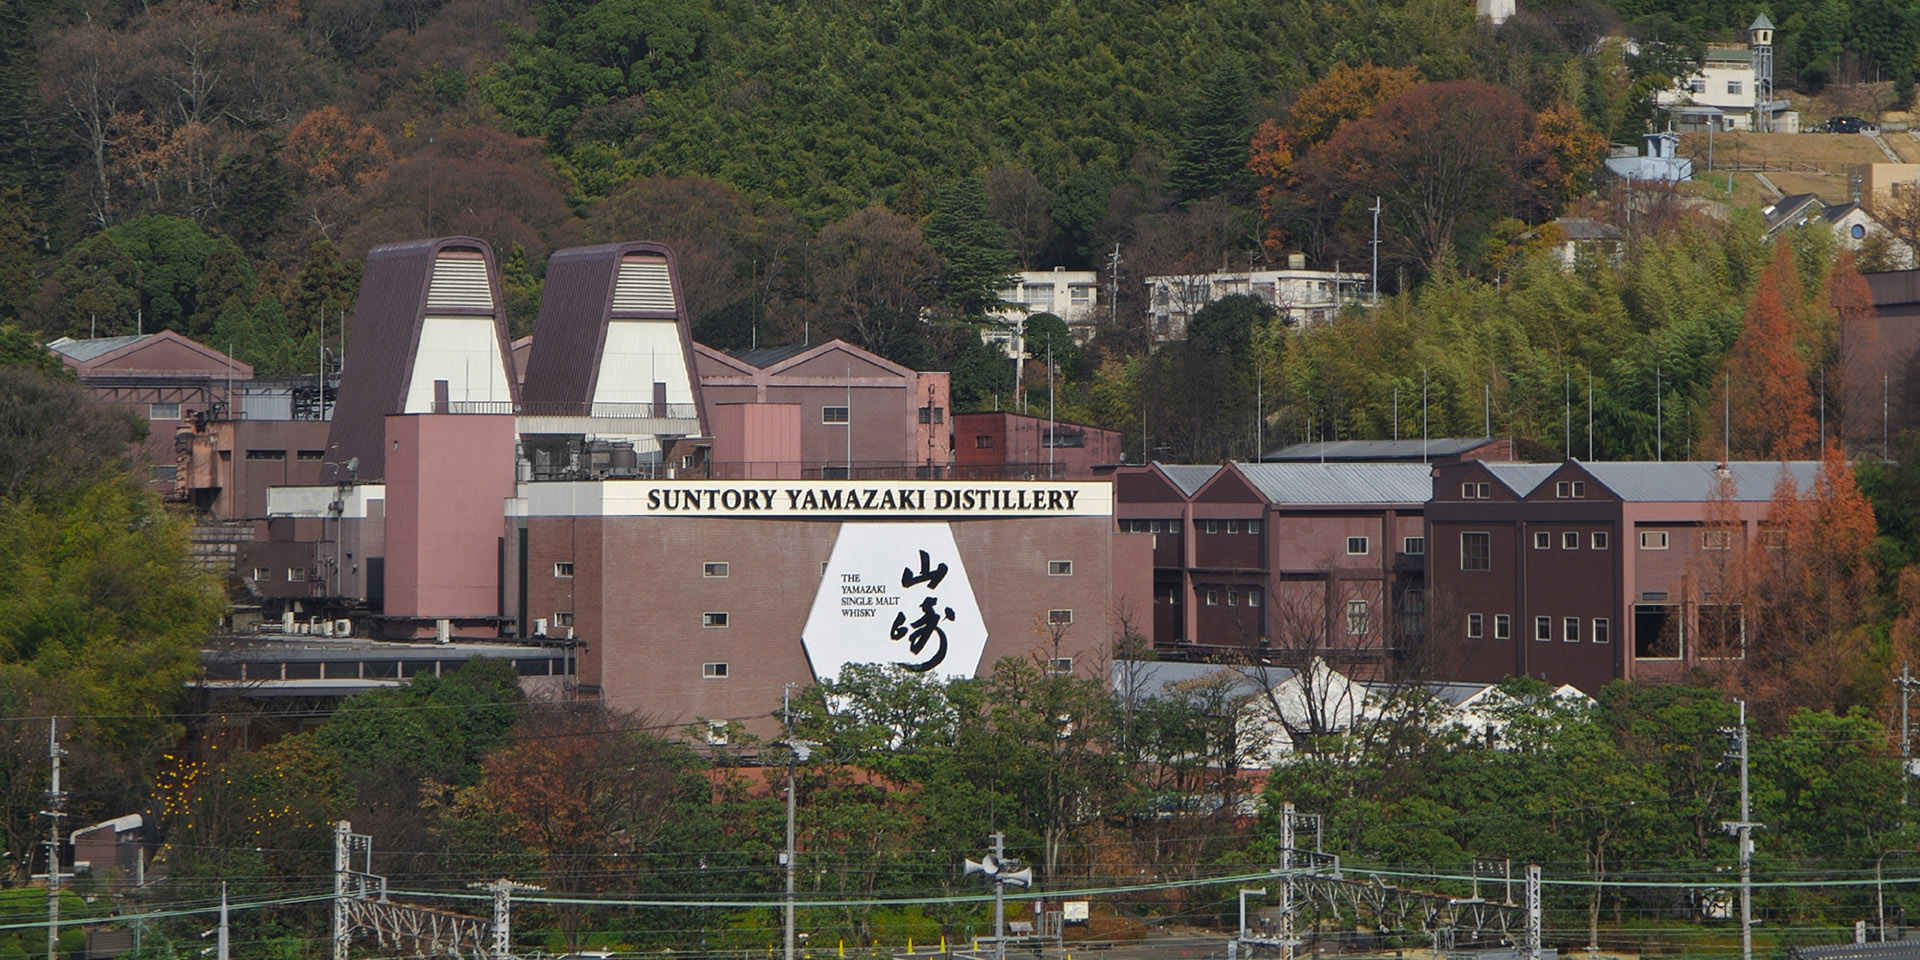 A Gentleman's Guide to the Distilleries of Japan